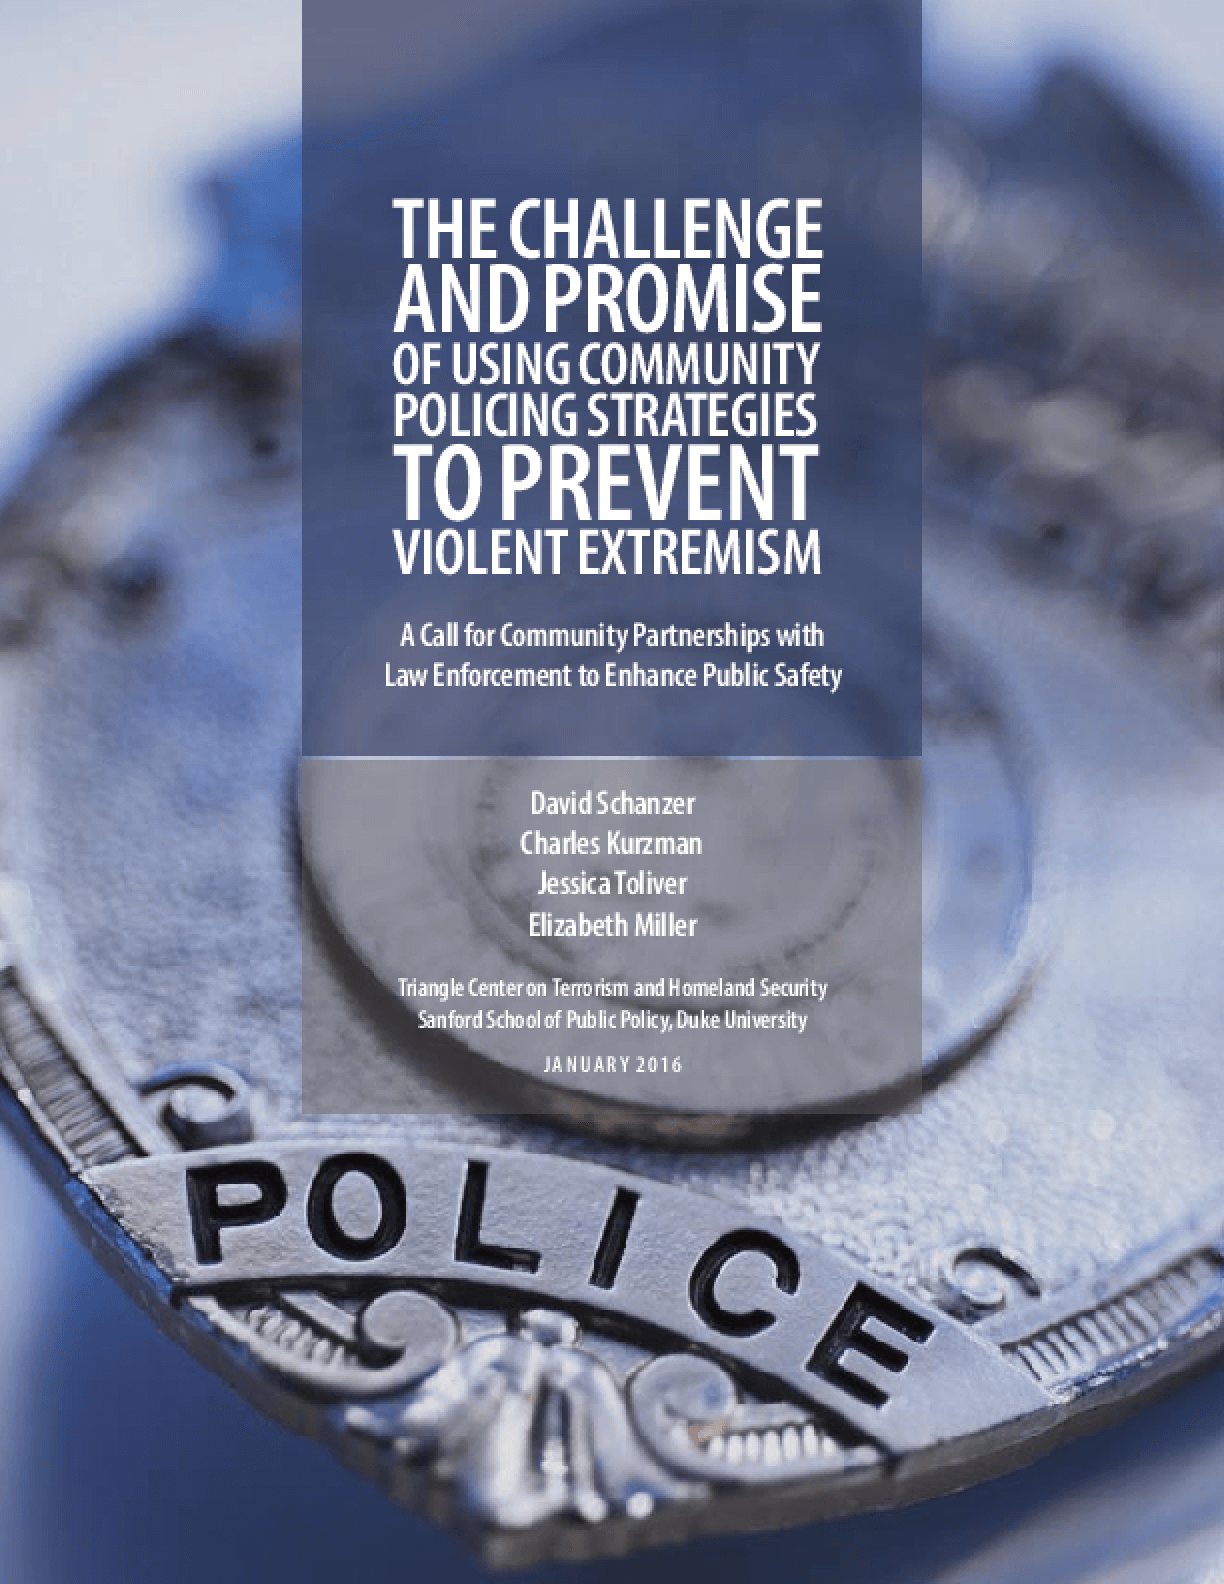 The Challenge and Promise of Using Community Policing Strategies to Prevent Violent Extremism: A Call for Community Partnerships with Law Enforcement to Enhance Public Safety